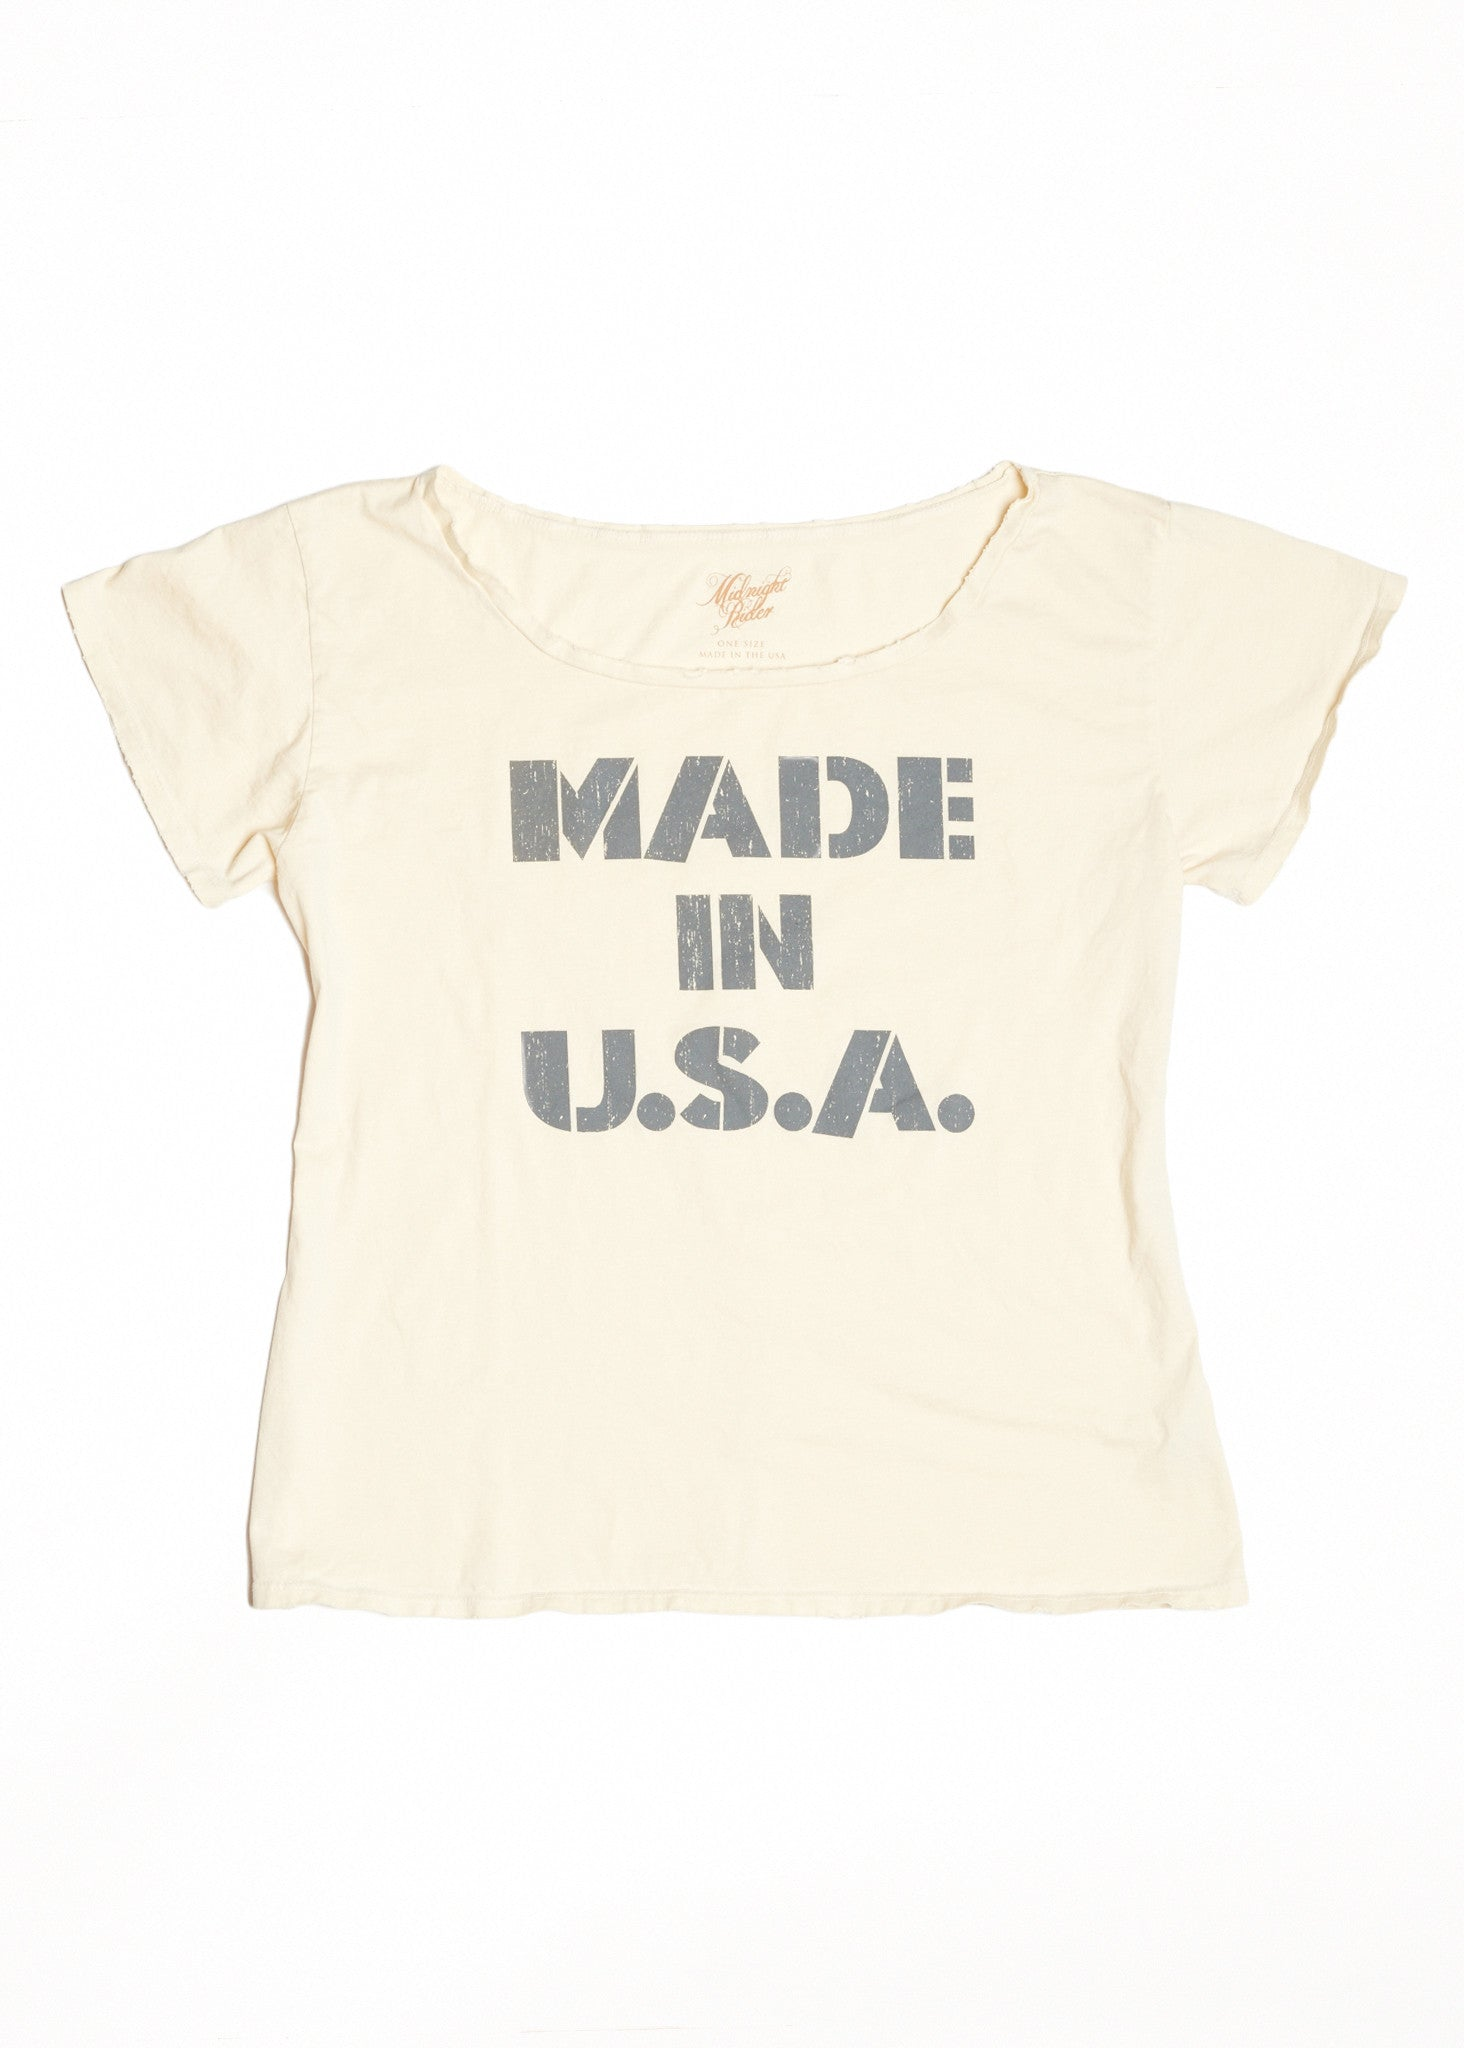 Made in U.S.A. Boyfriend Tee - Dirty White - Women's Boyfriend Tee - Midnight Rider